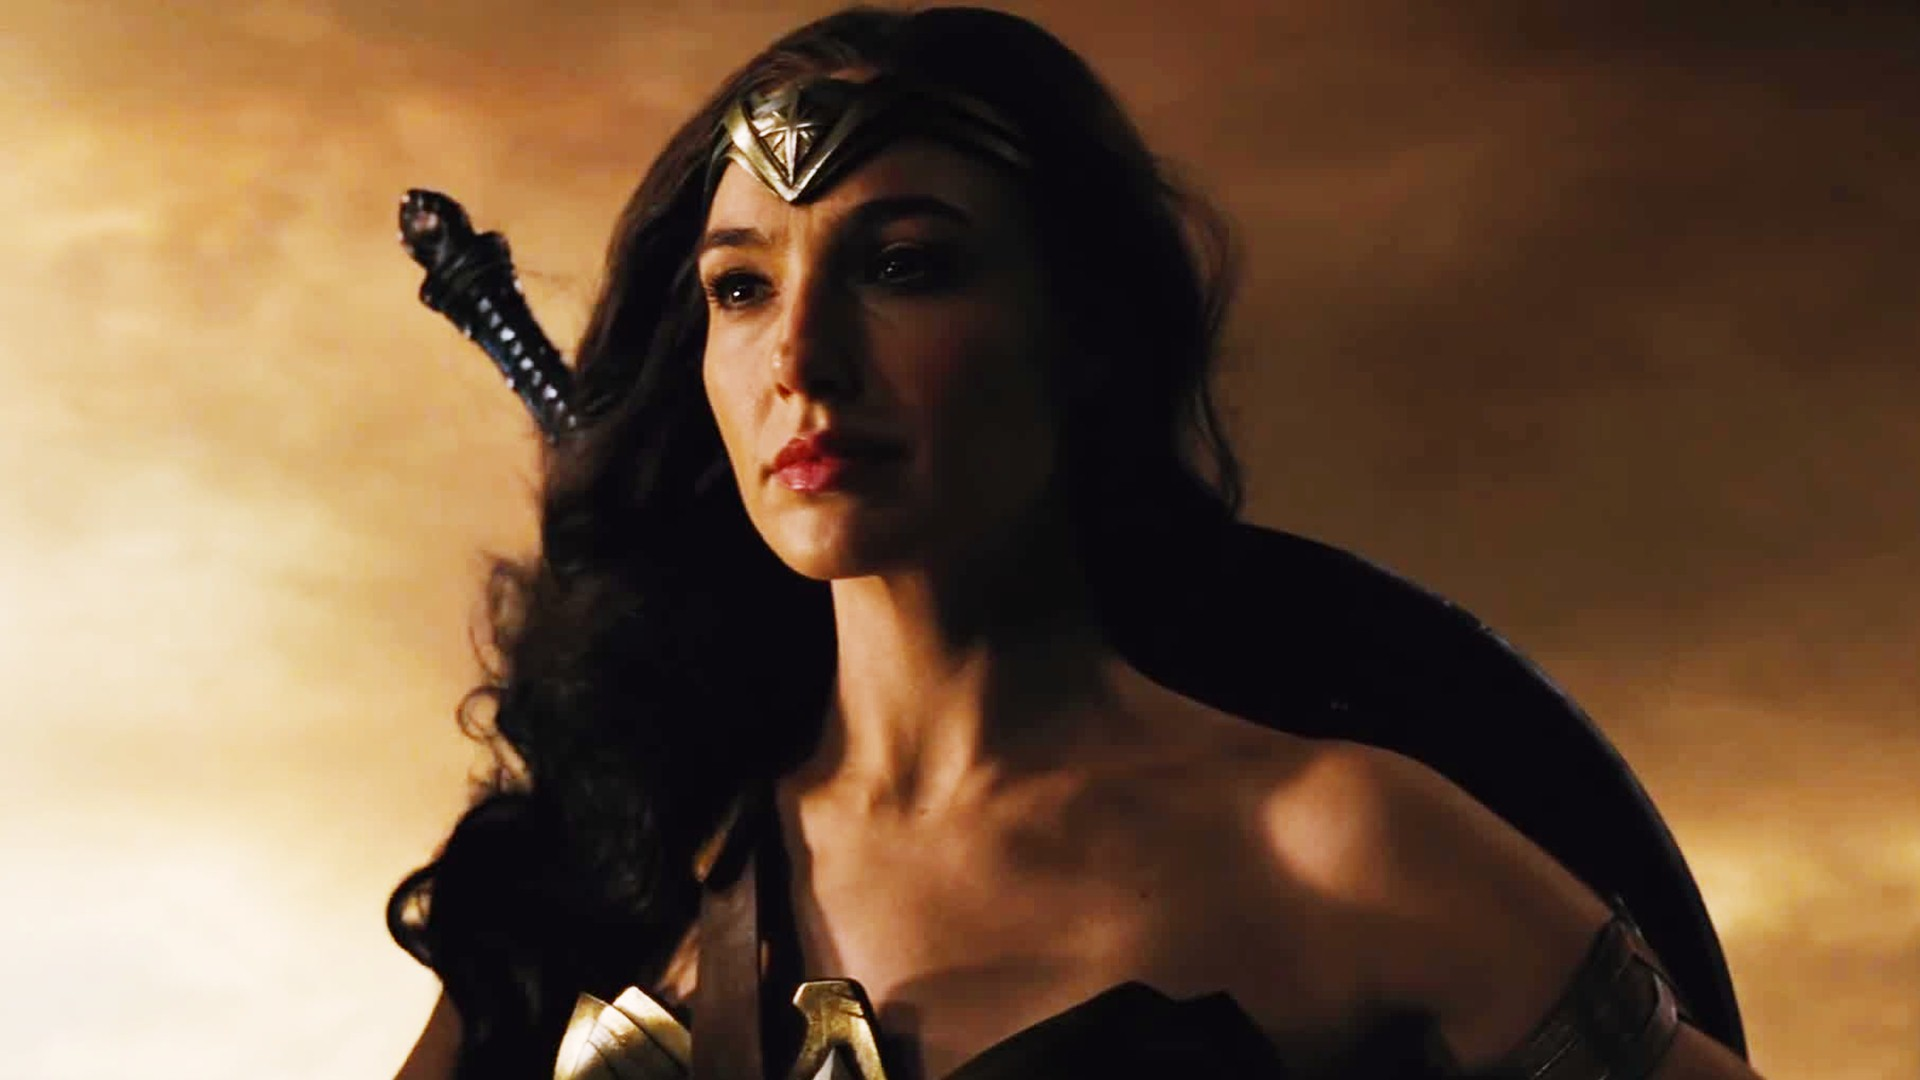 Free Download Gal Gadot Diana Prince Justice League Hd Wallpapers